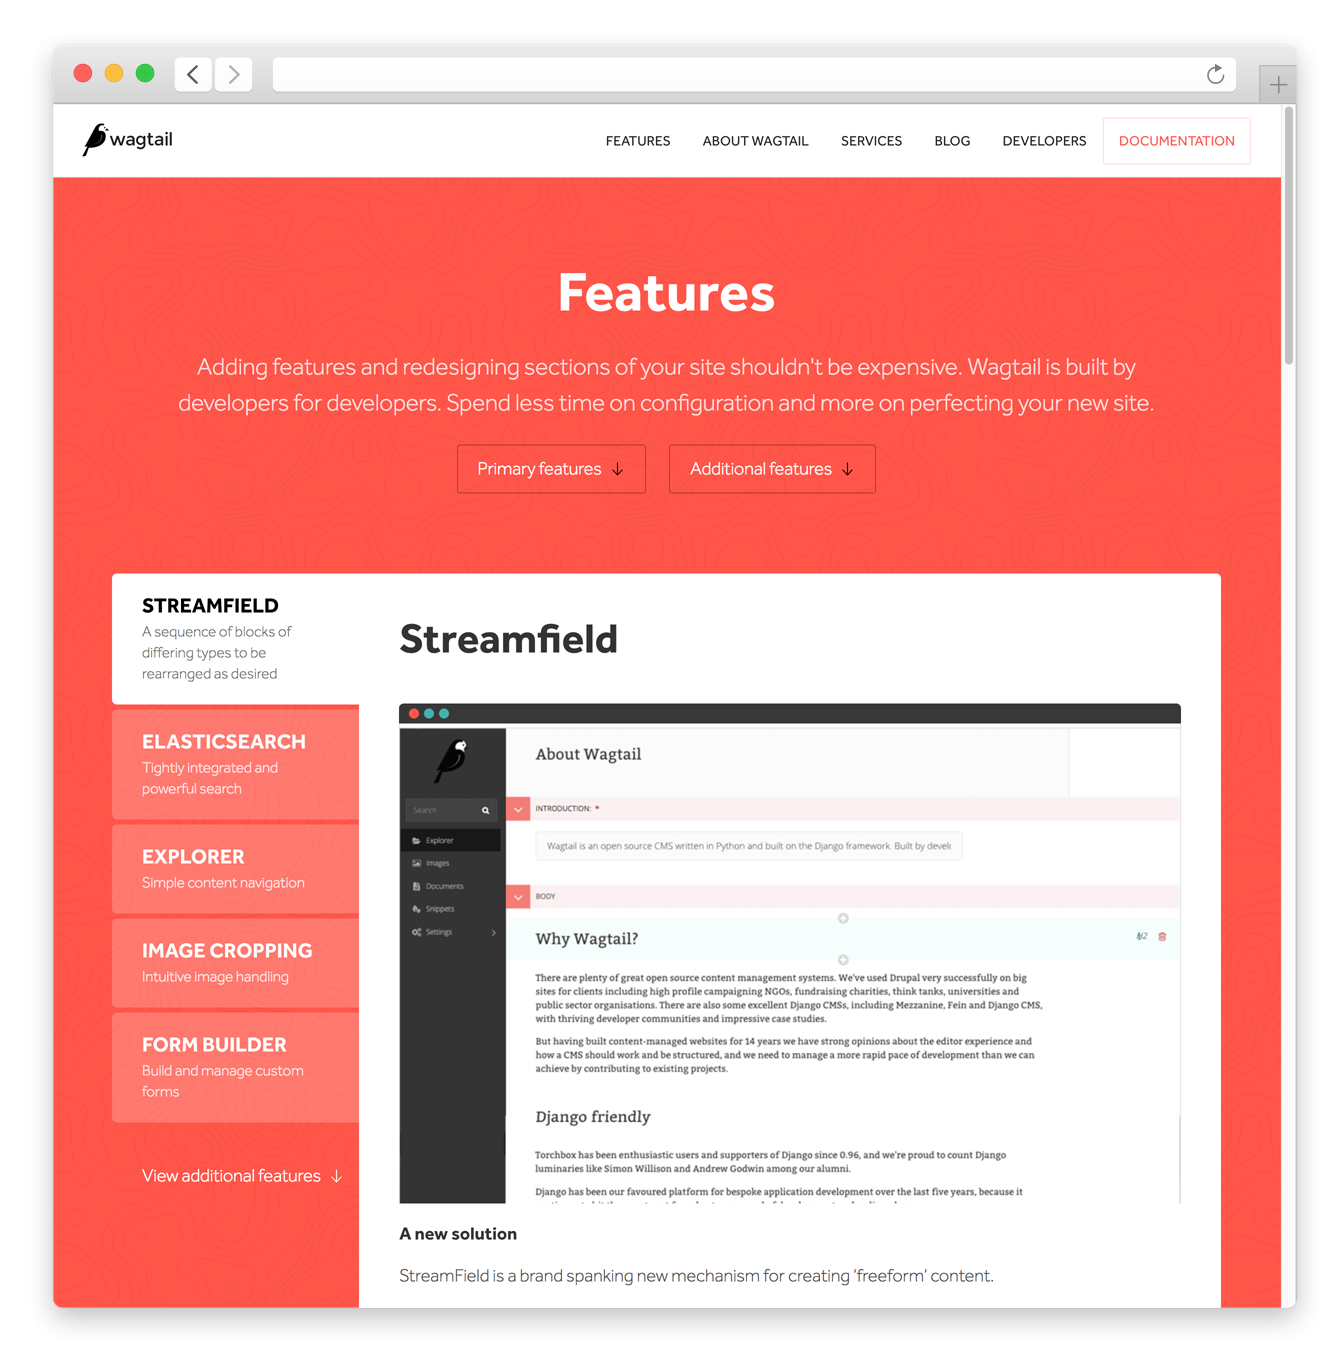 Wagtail features